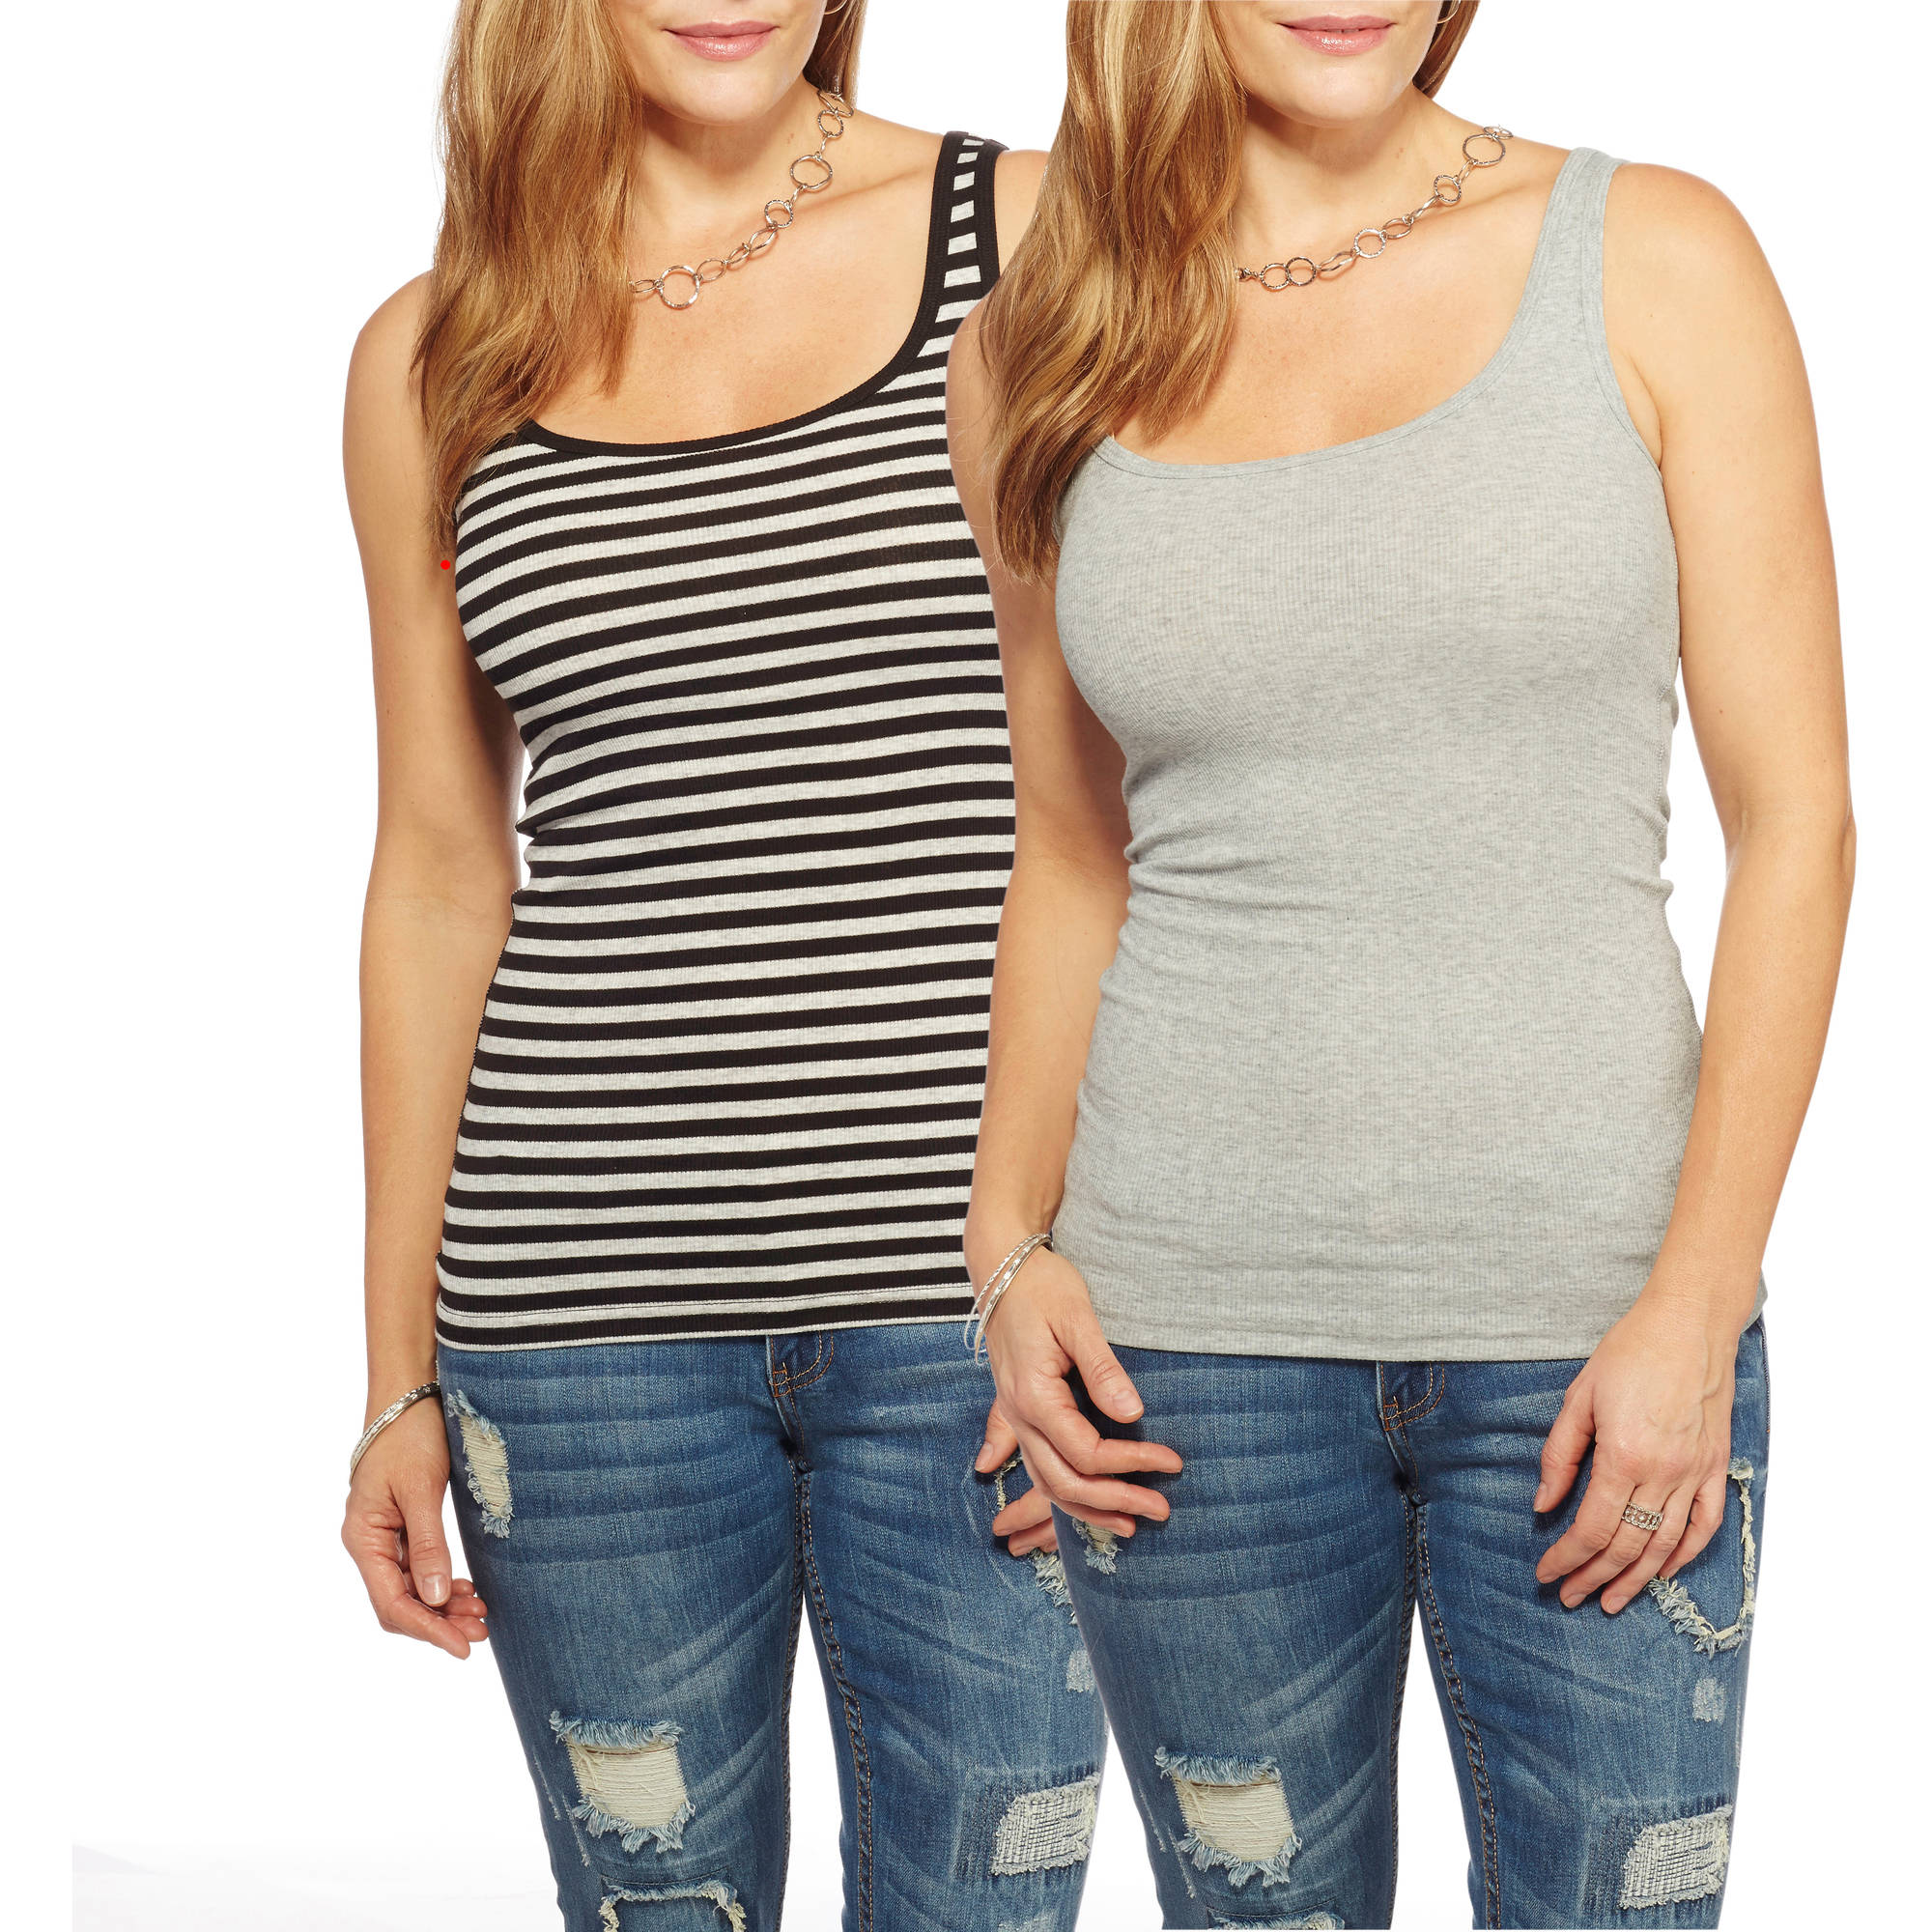 Faded Glory Women's Essential Rib Tank, 2 Pack Value Bundle